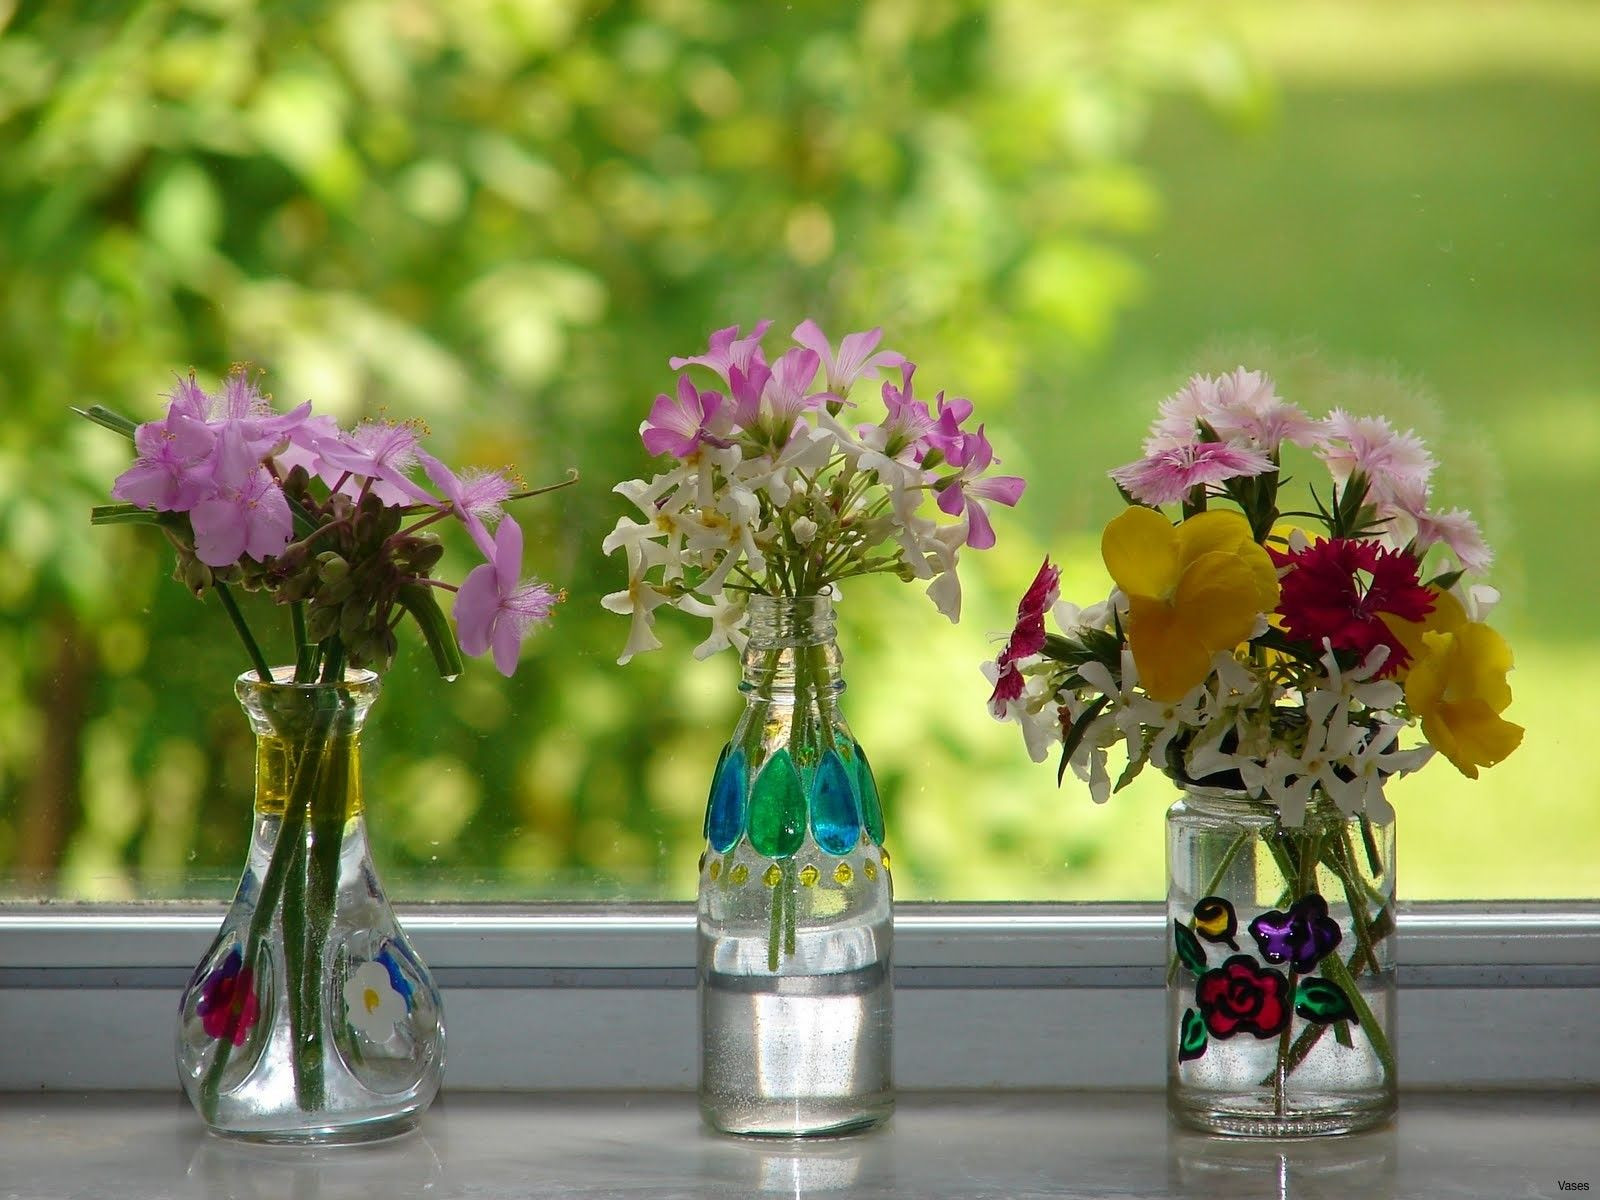 small flower vase online of small glass vases lovely decorating ideas for vases beautiful diy with small glass vases lovely decorating ideas for vases beautiful diy home decor vaseh vases